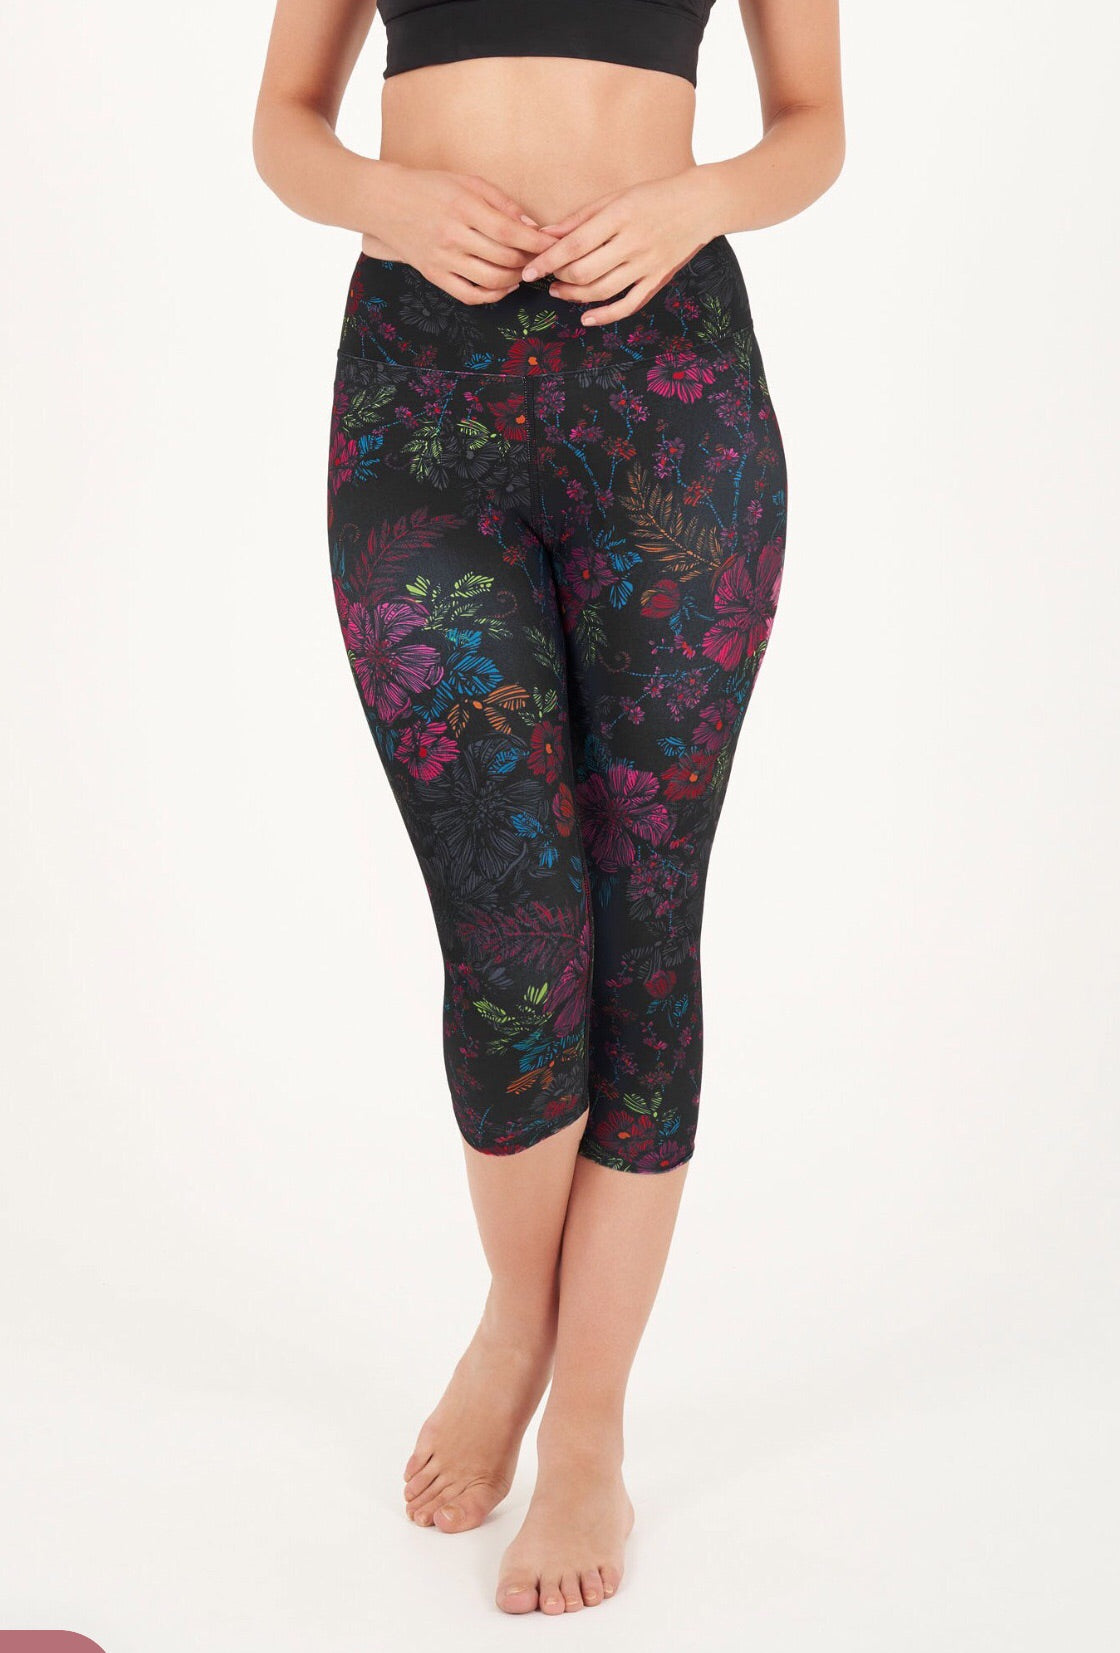 Dharma Bums Equinox High Waist Printed Legging - Crop - yApparel